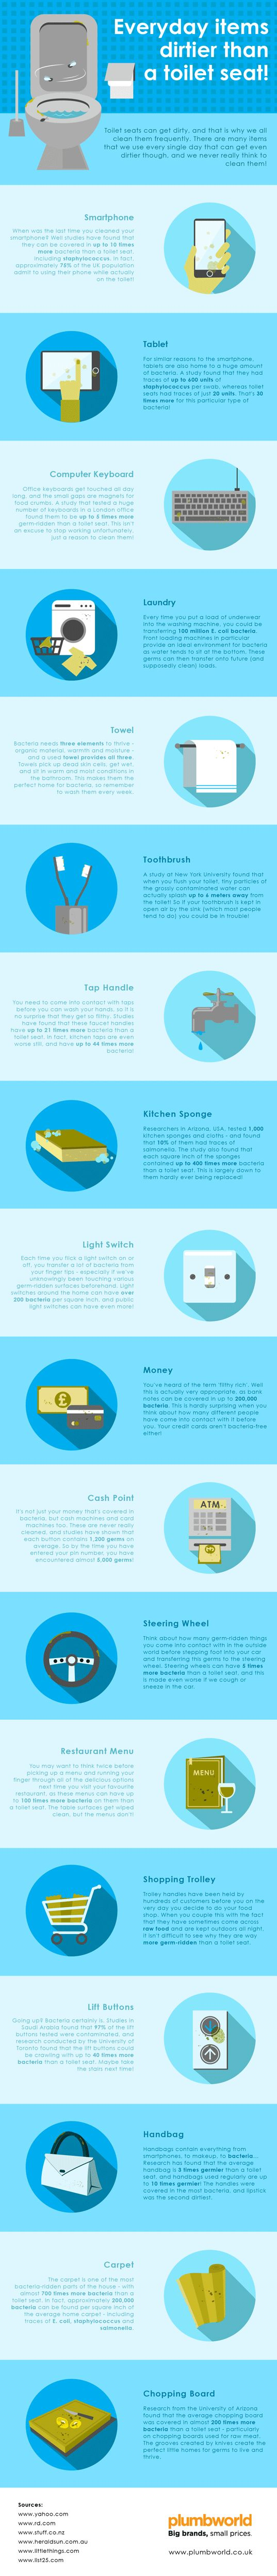 40 Best Stay Healthy Images On Pinterest Gym Health And Country Coach Headlight Switch Wiring Diagram Everyday Items Dirtier Than A Toilet Seat Infographic